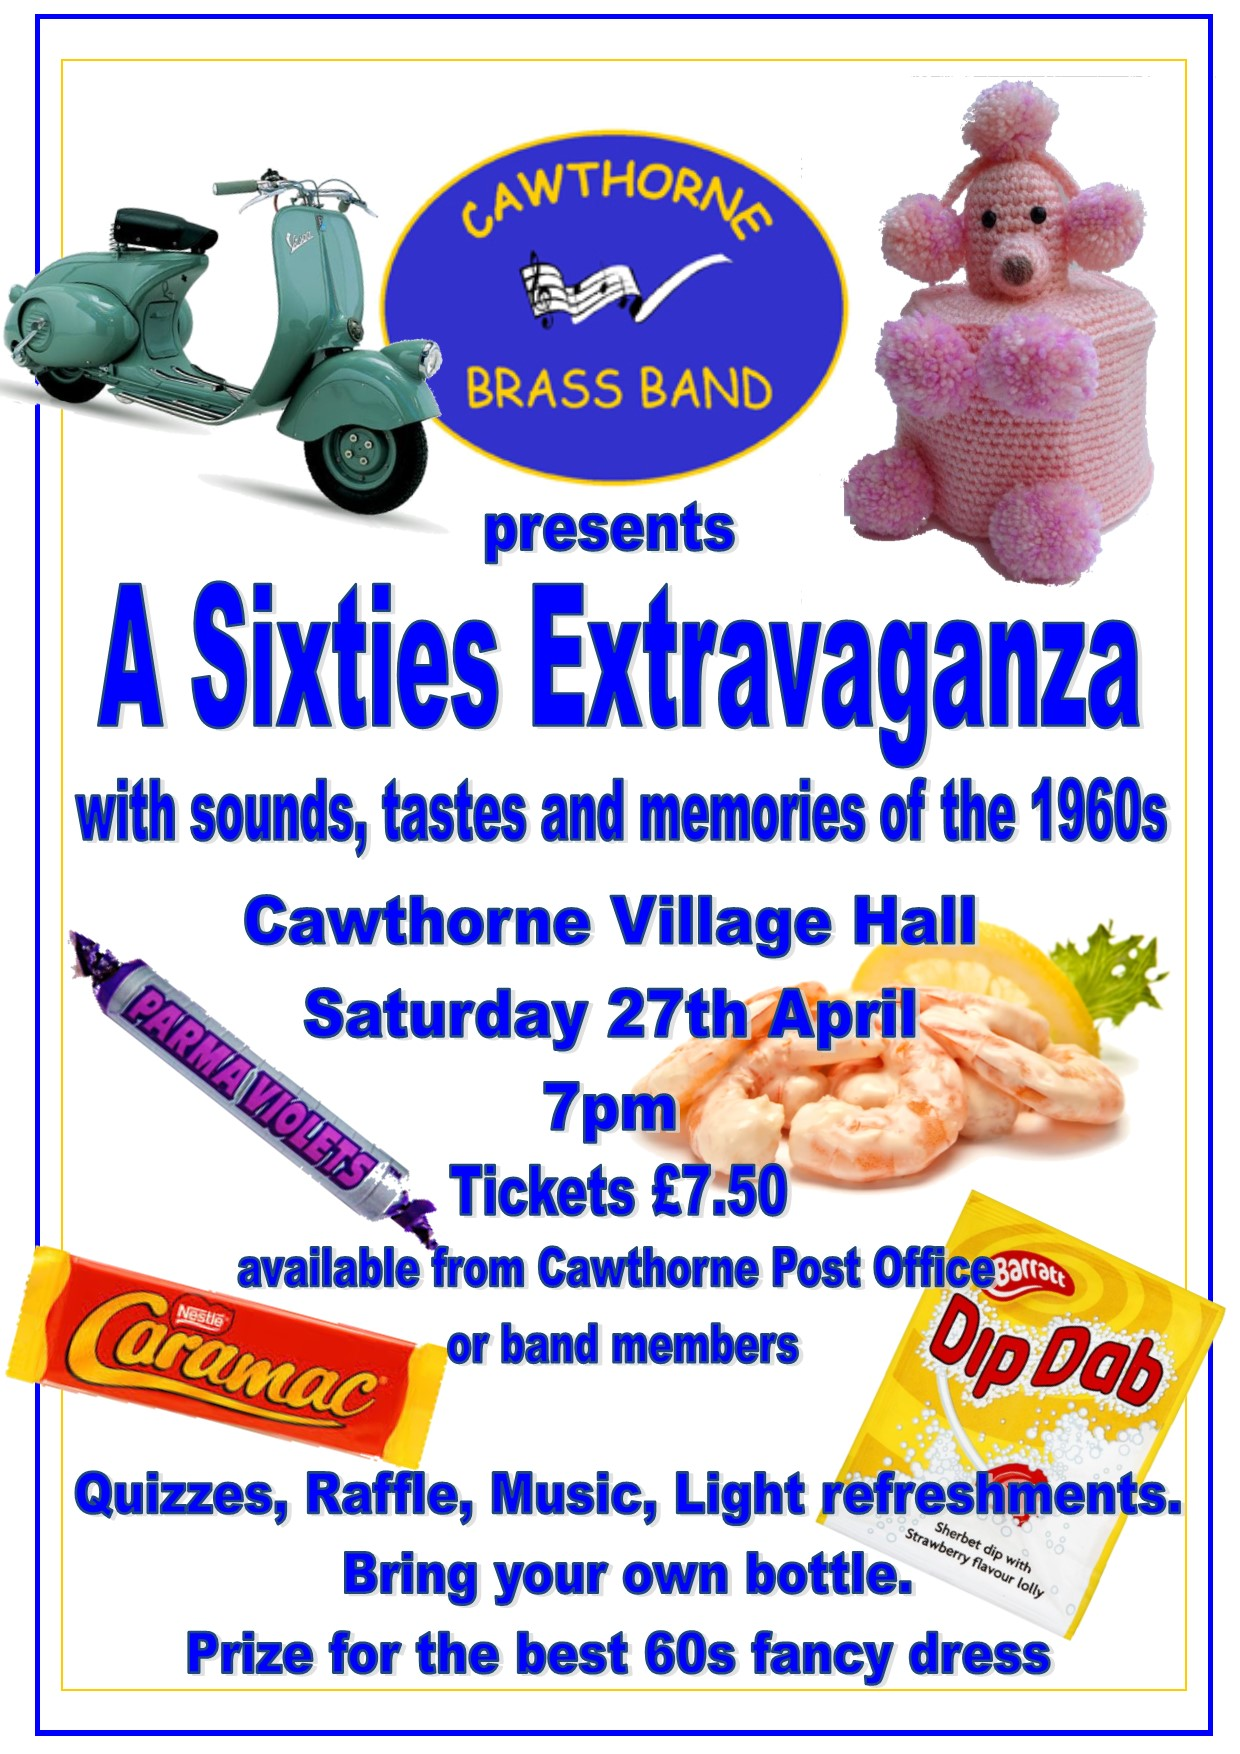 poster for the Sixties Extravaganza event